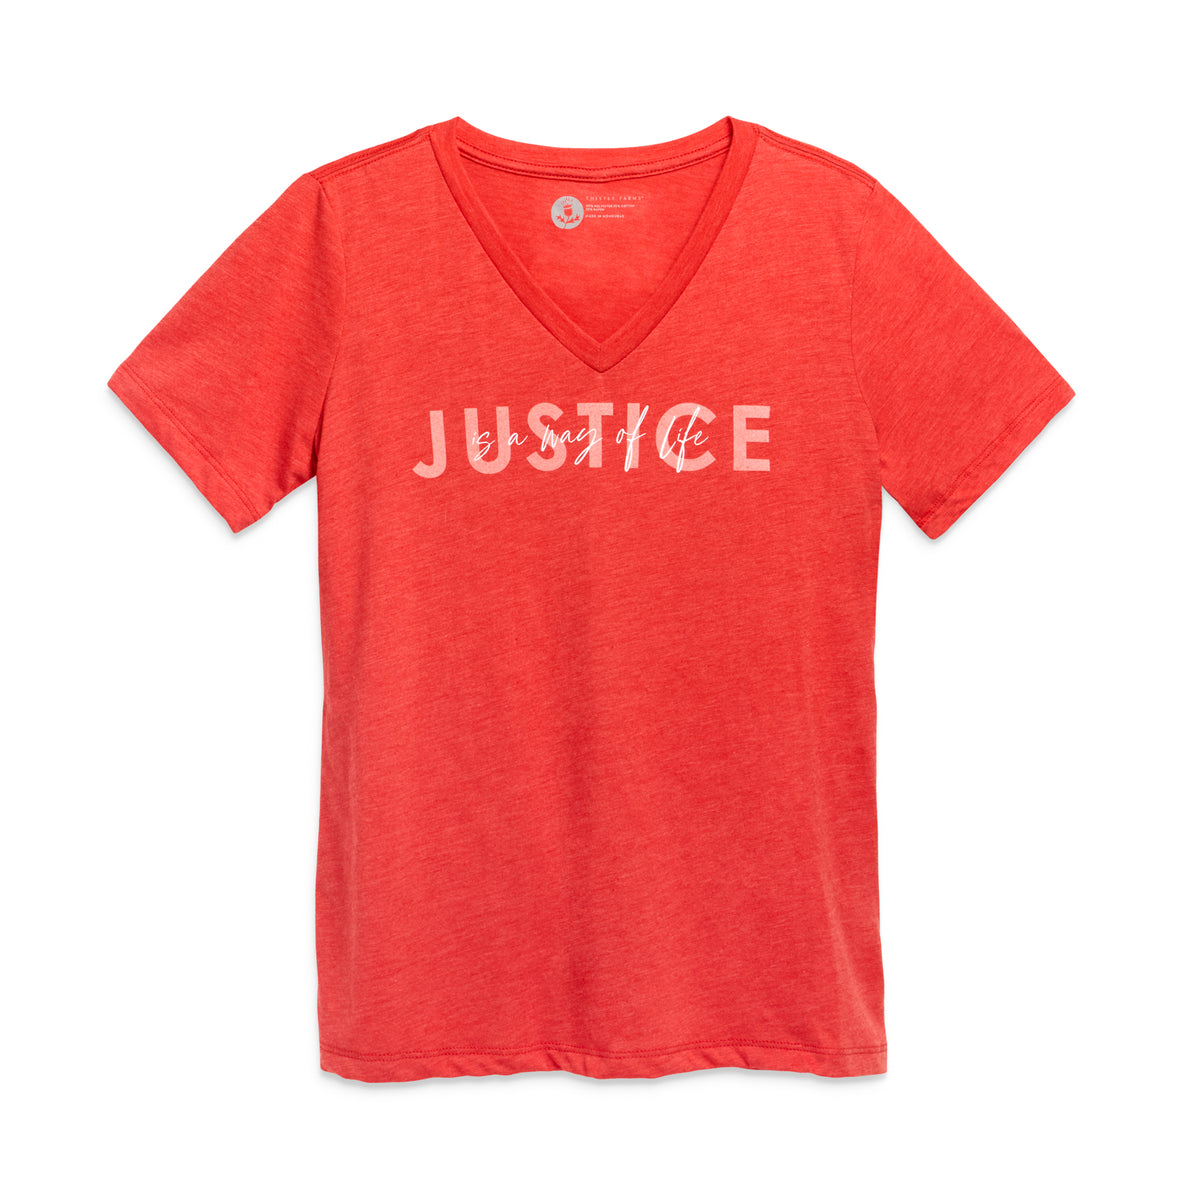 Justice Is a Way of Life Tee